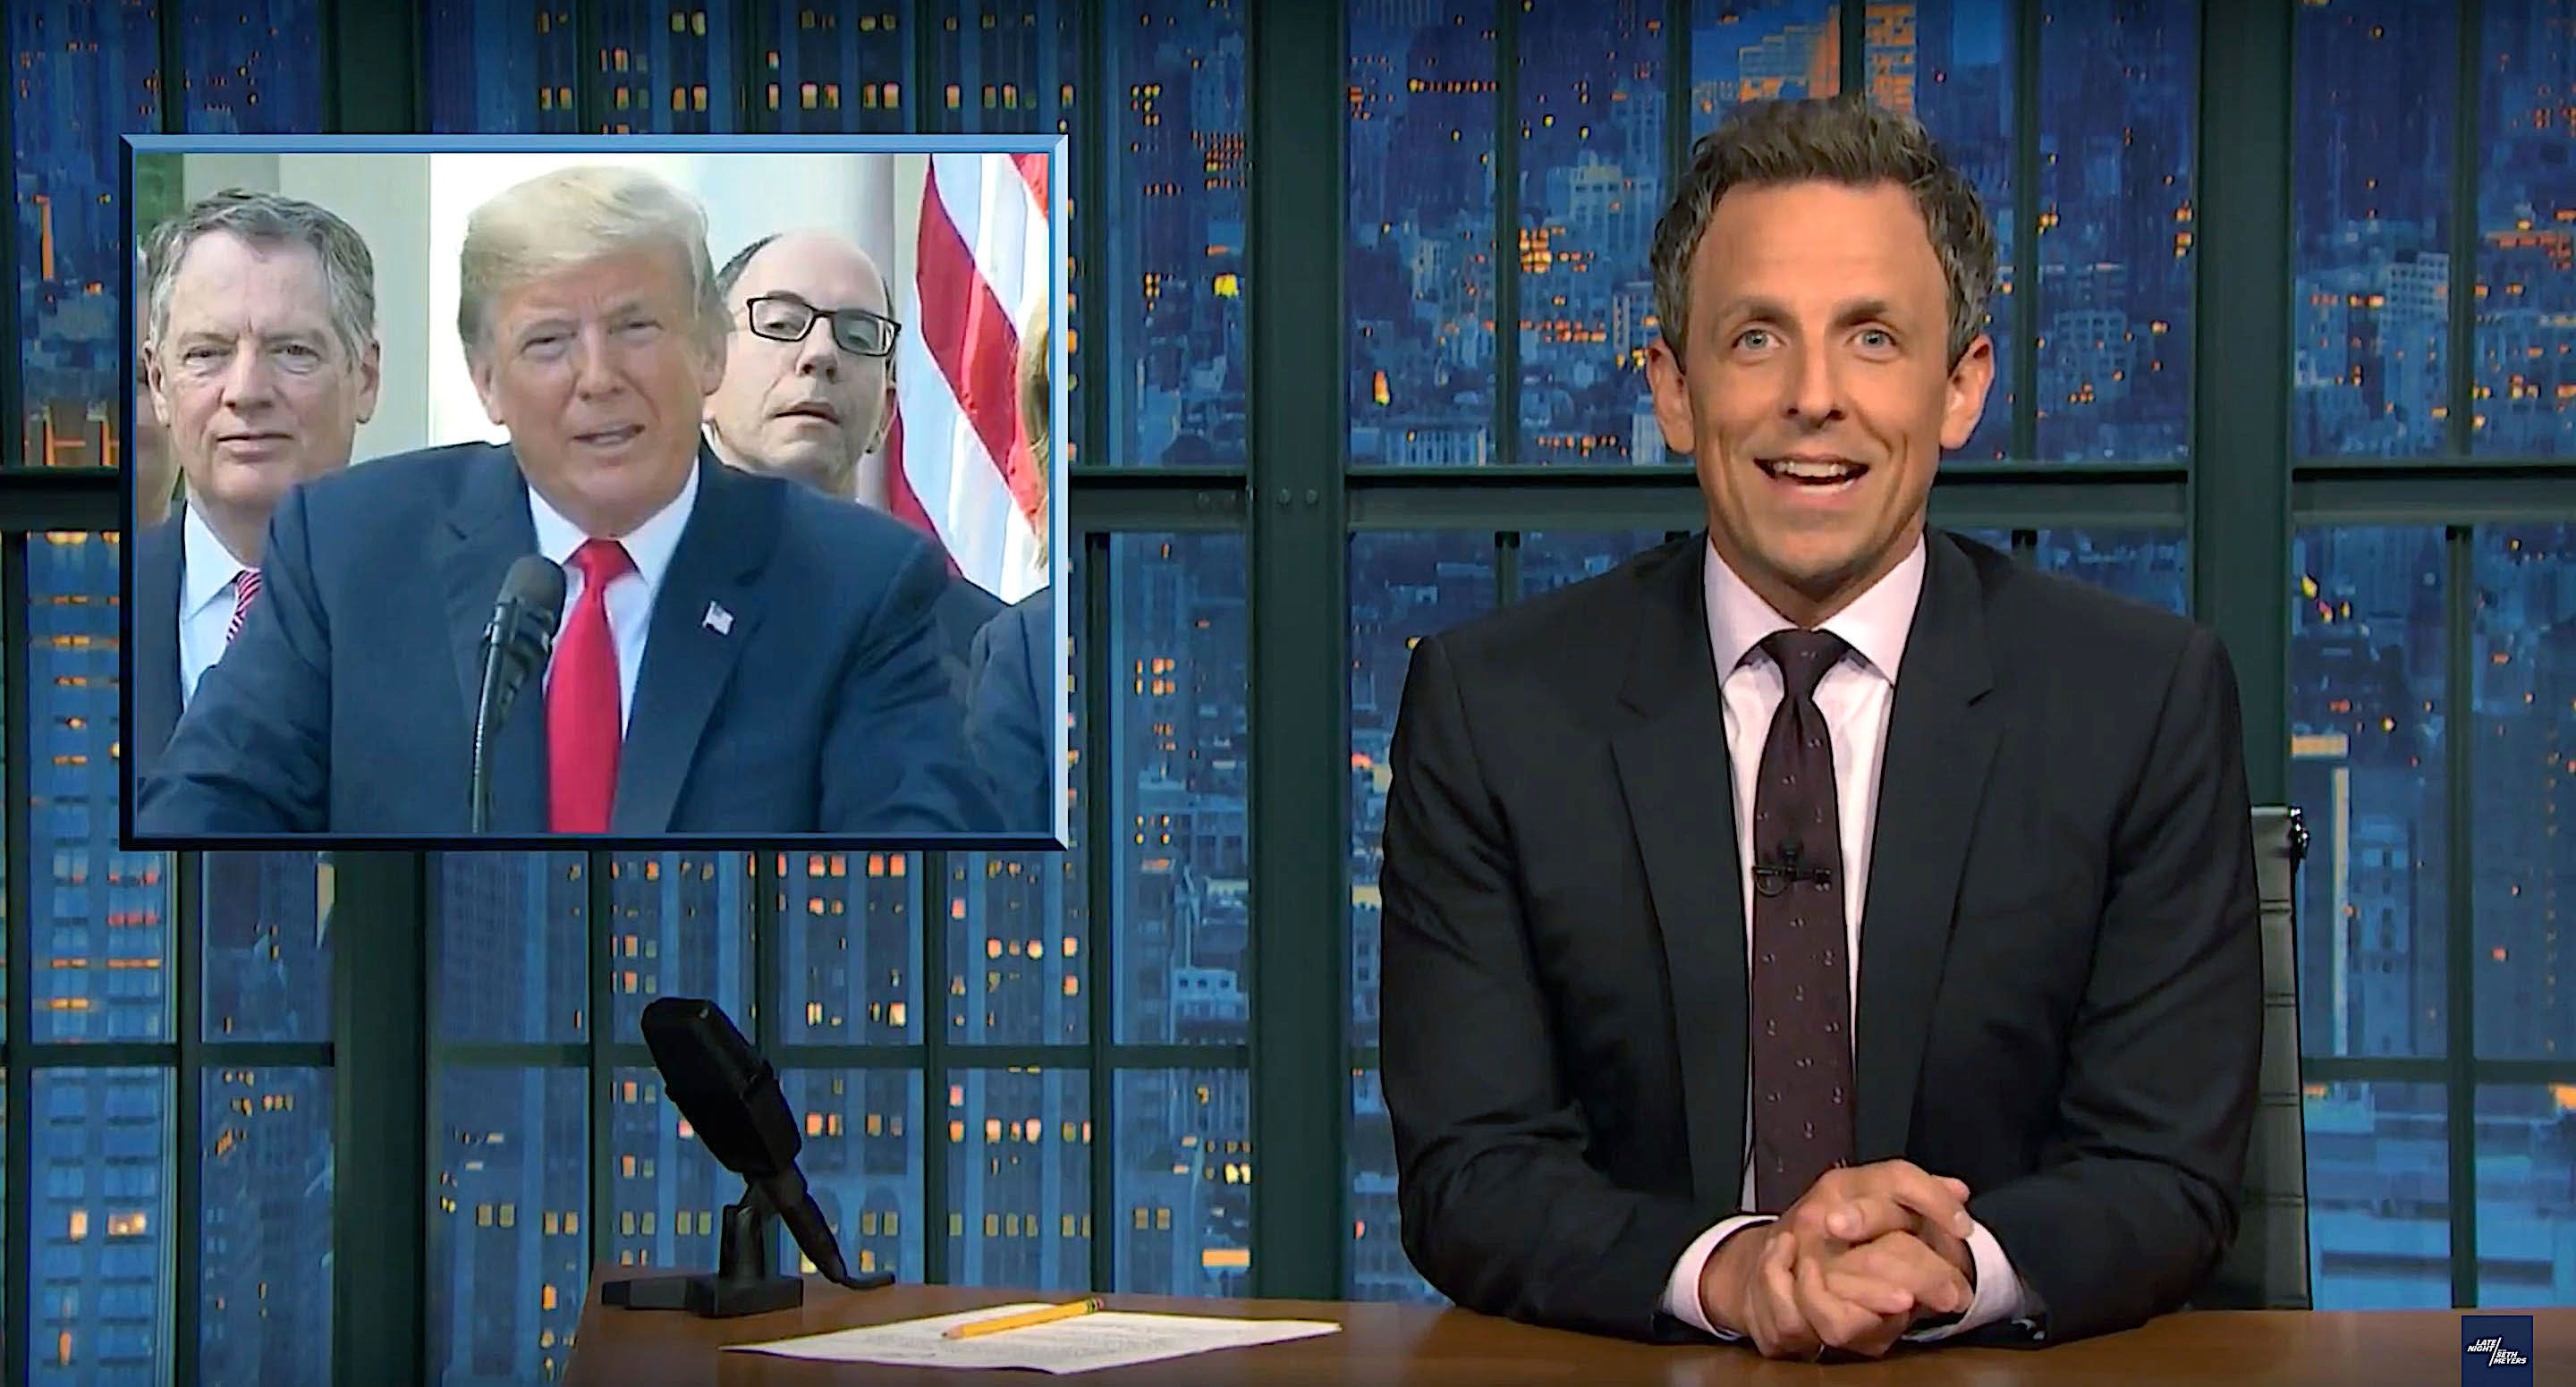 Seth Meyers of Late Night weighs in on President Donald Trumps news conference on the trade agreement